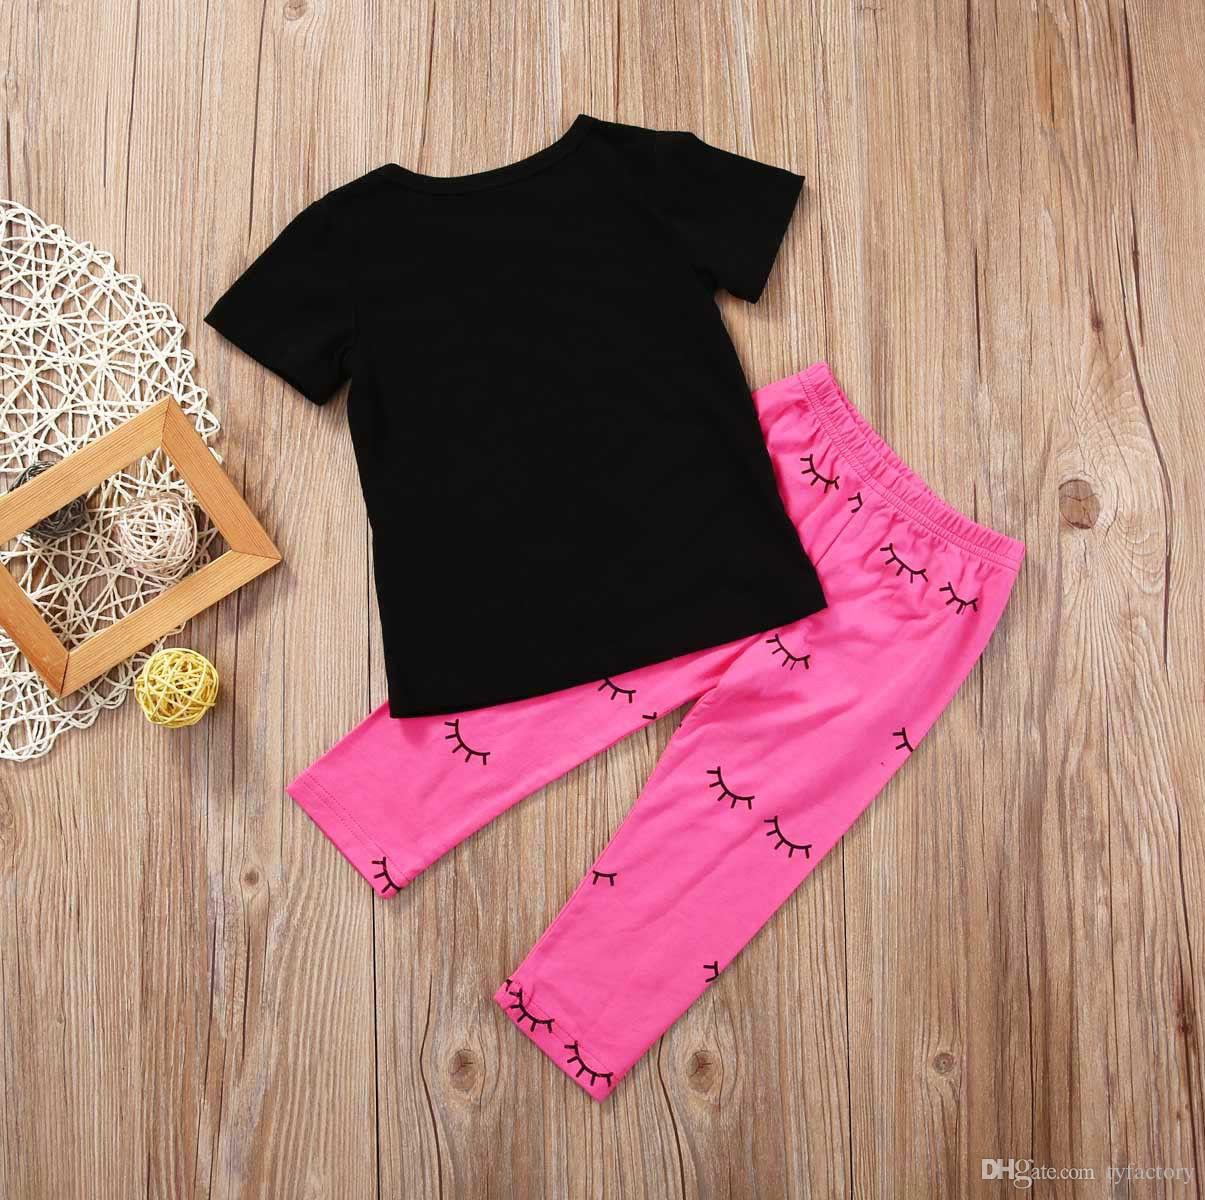 2017 Summer Toddler Infant Kid Baby Girls Outfits Black T-shirt Tops + Pink Leggings Pants Clothes